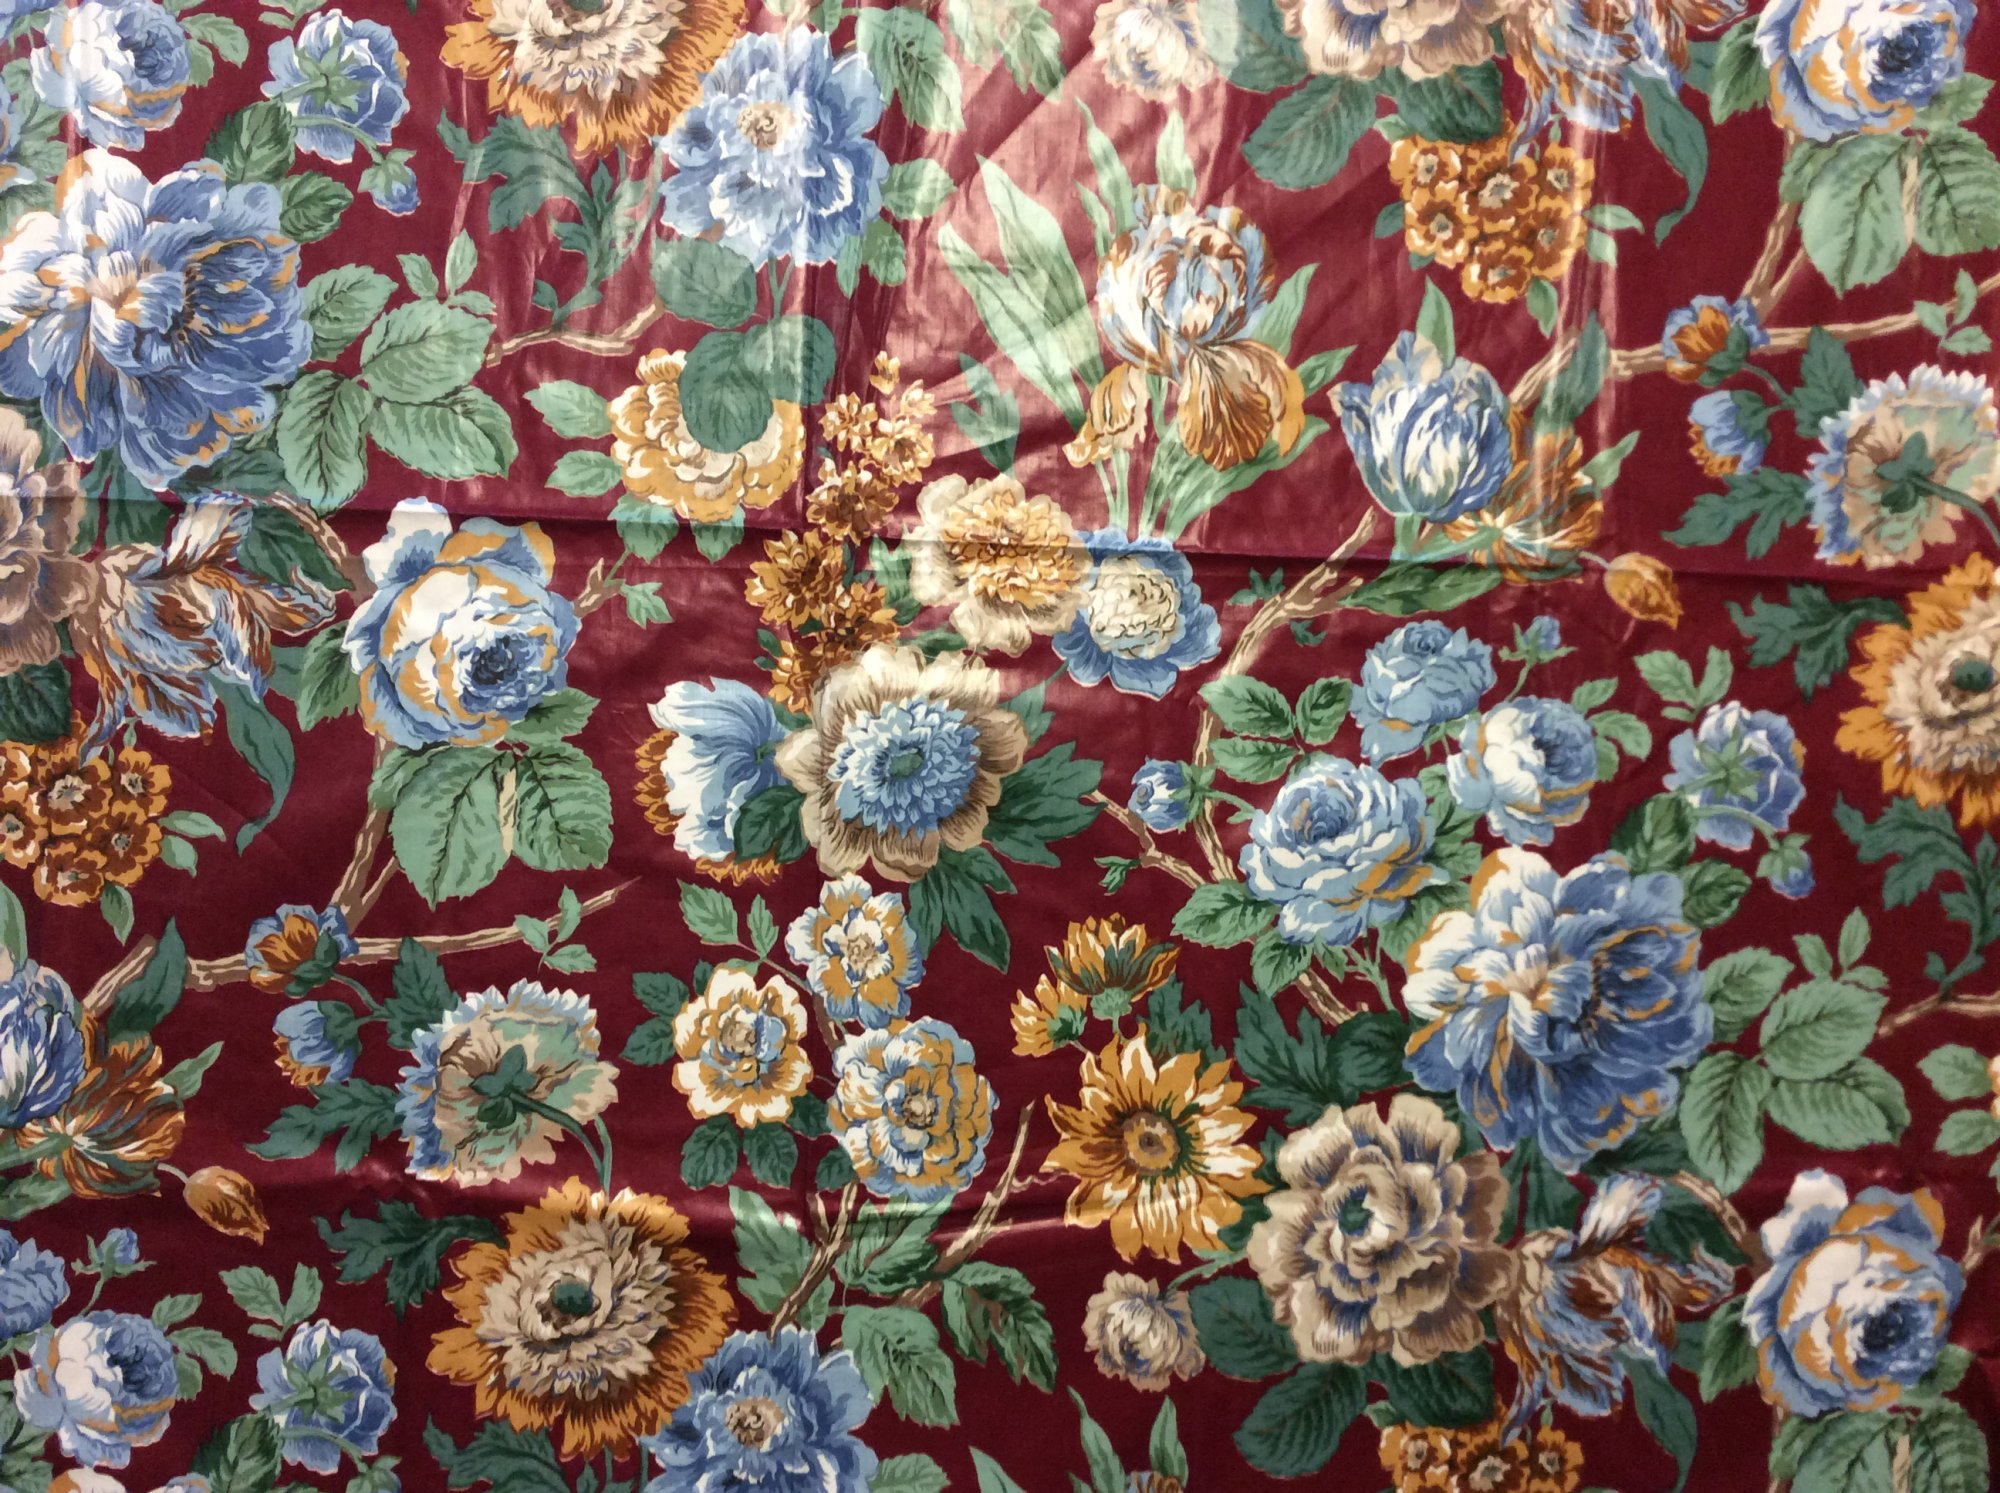 Last Piece! 2.5 yard Piece! Vintage Schumacher High End Chintz 'Gala Chintz' Floral Sunflower Burgundy Blue and Green Tradional French Country Shabby Chic Home Decor Upholstery Fabric REM012